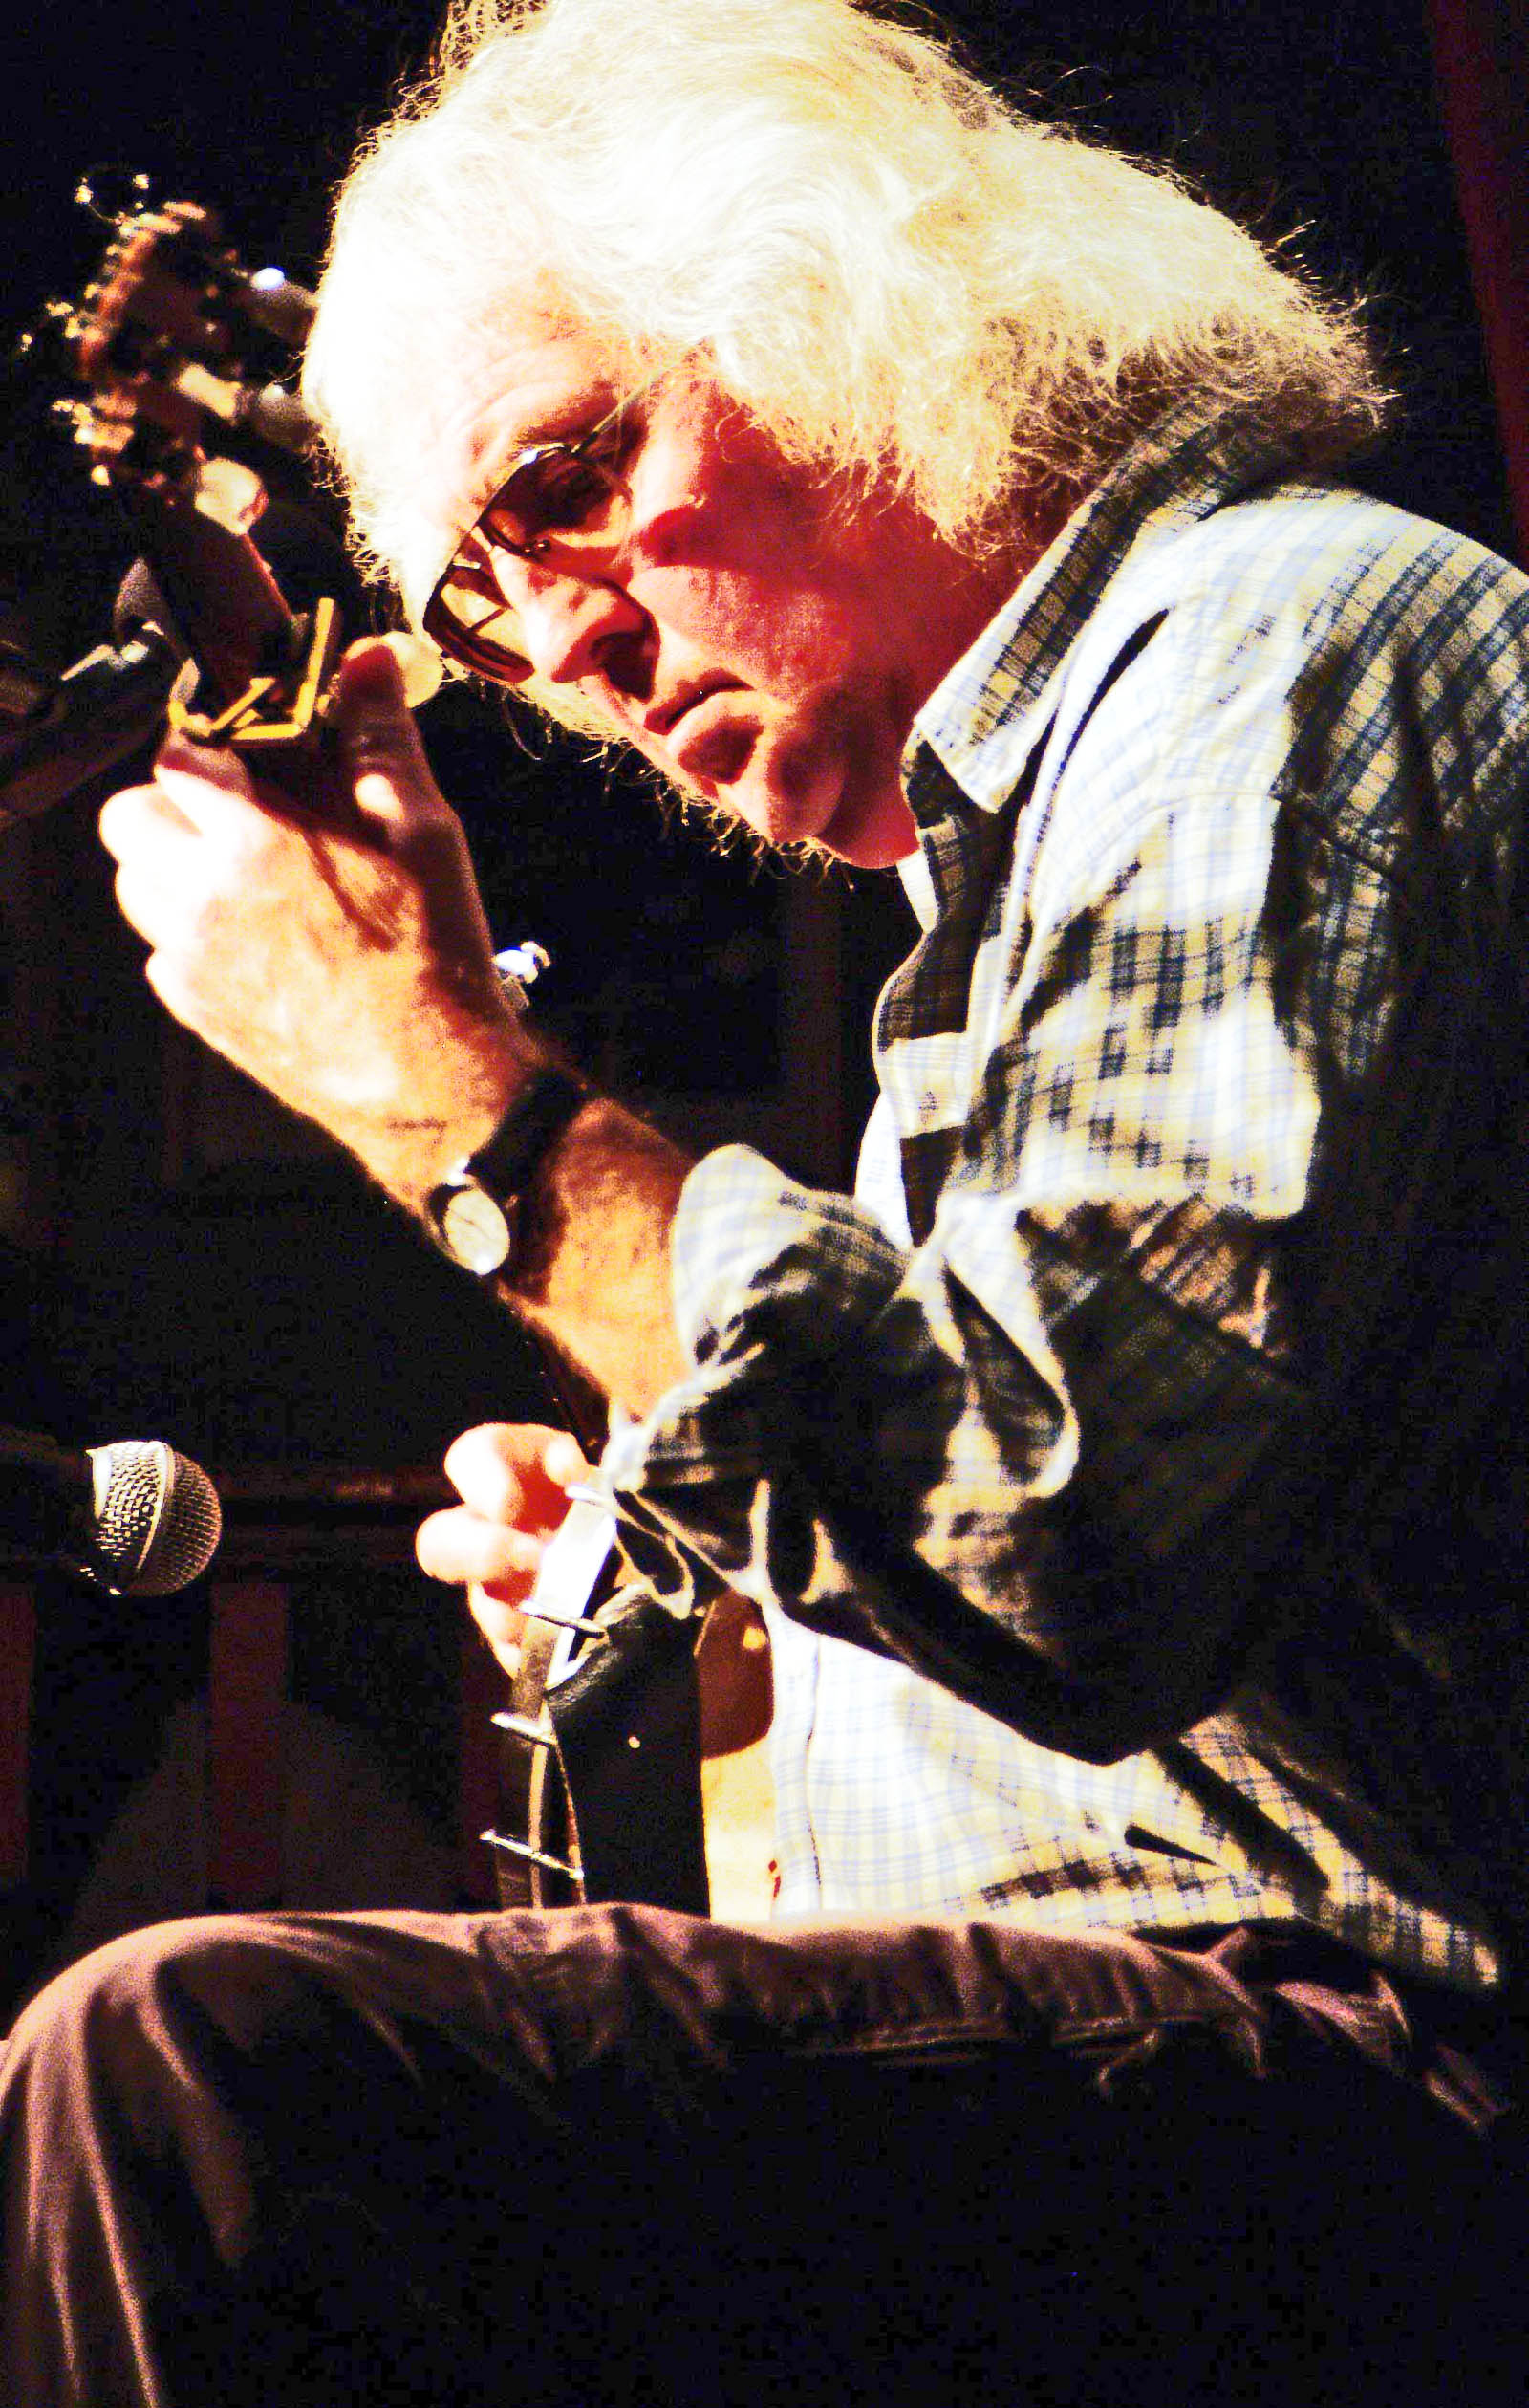 Wizz Jones at Croydon Folk Club on Monday Night, 25th November, 8:15